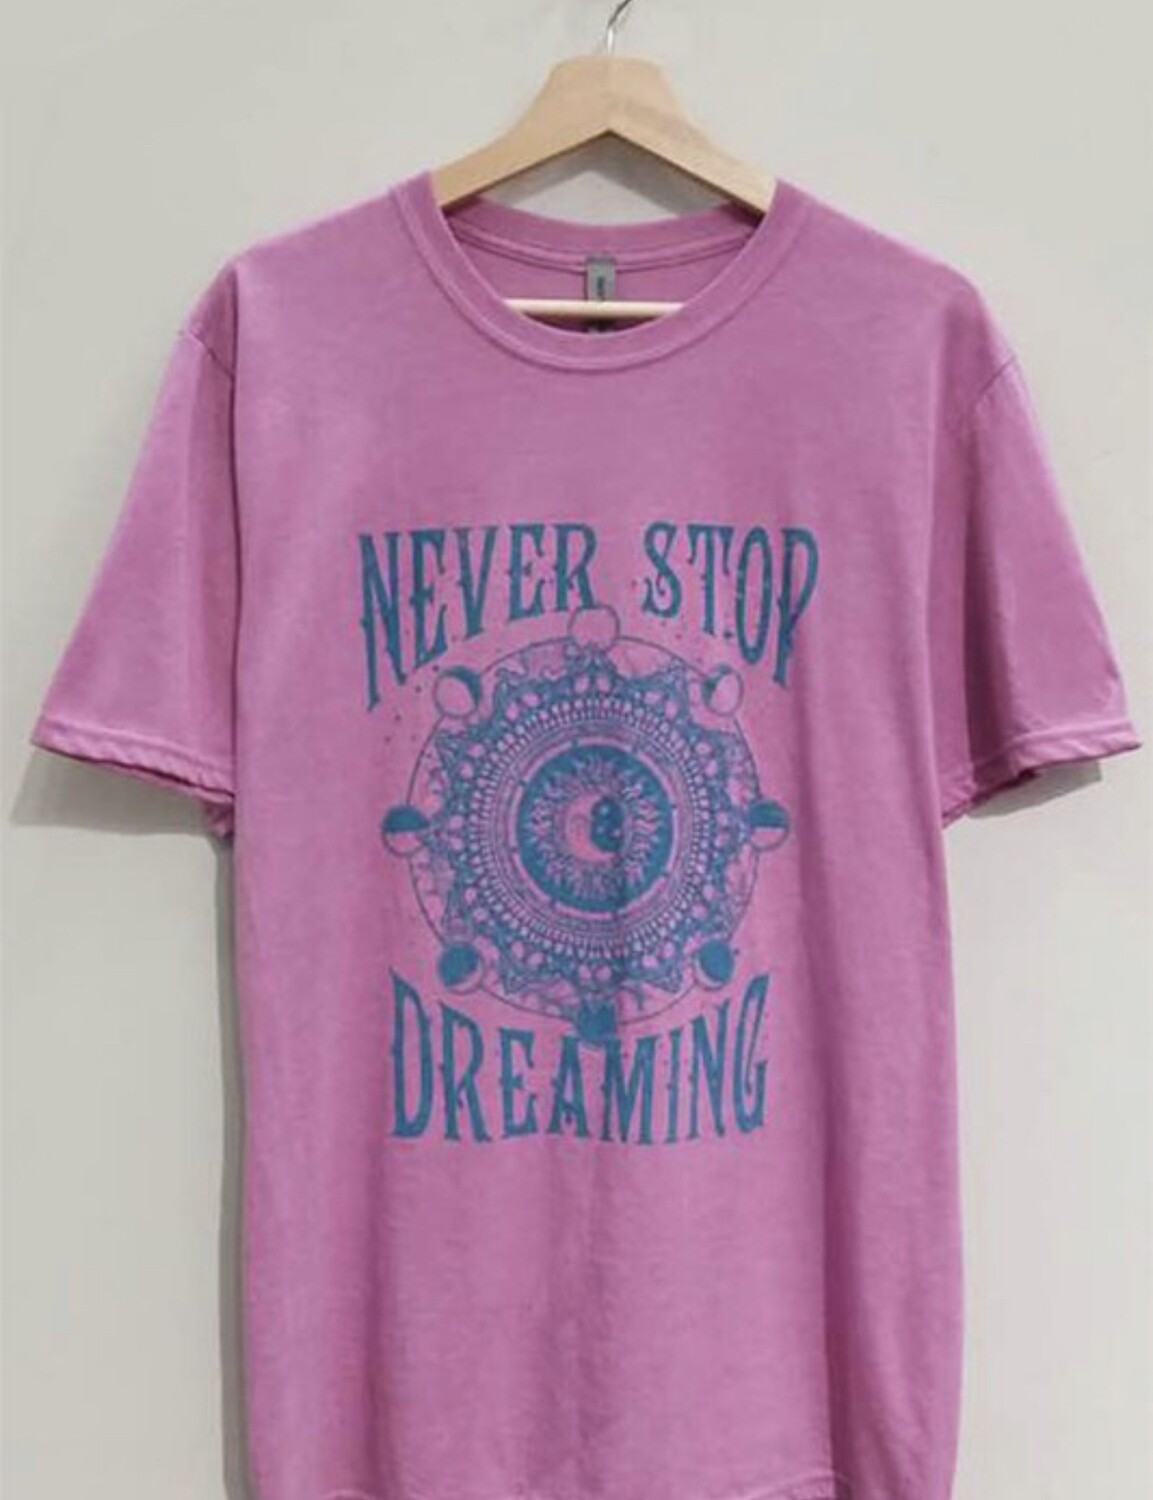 Dreaming Graphic Tee